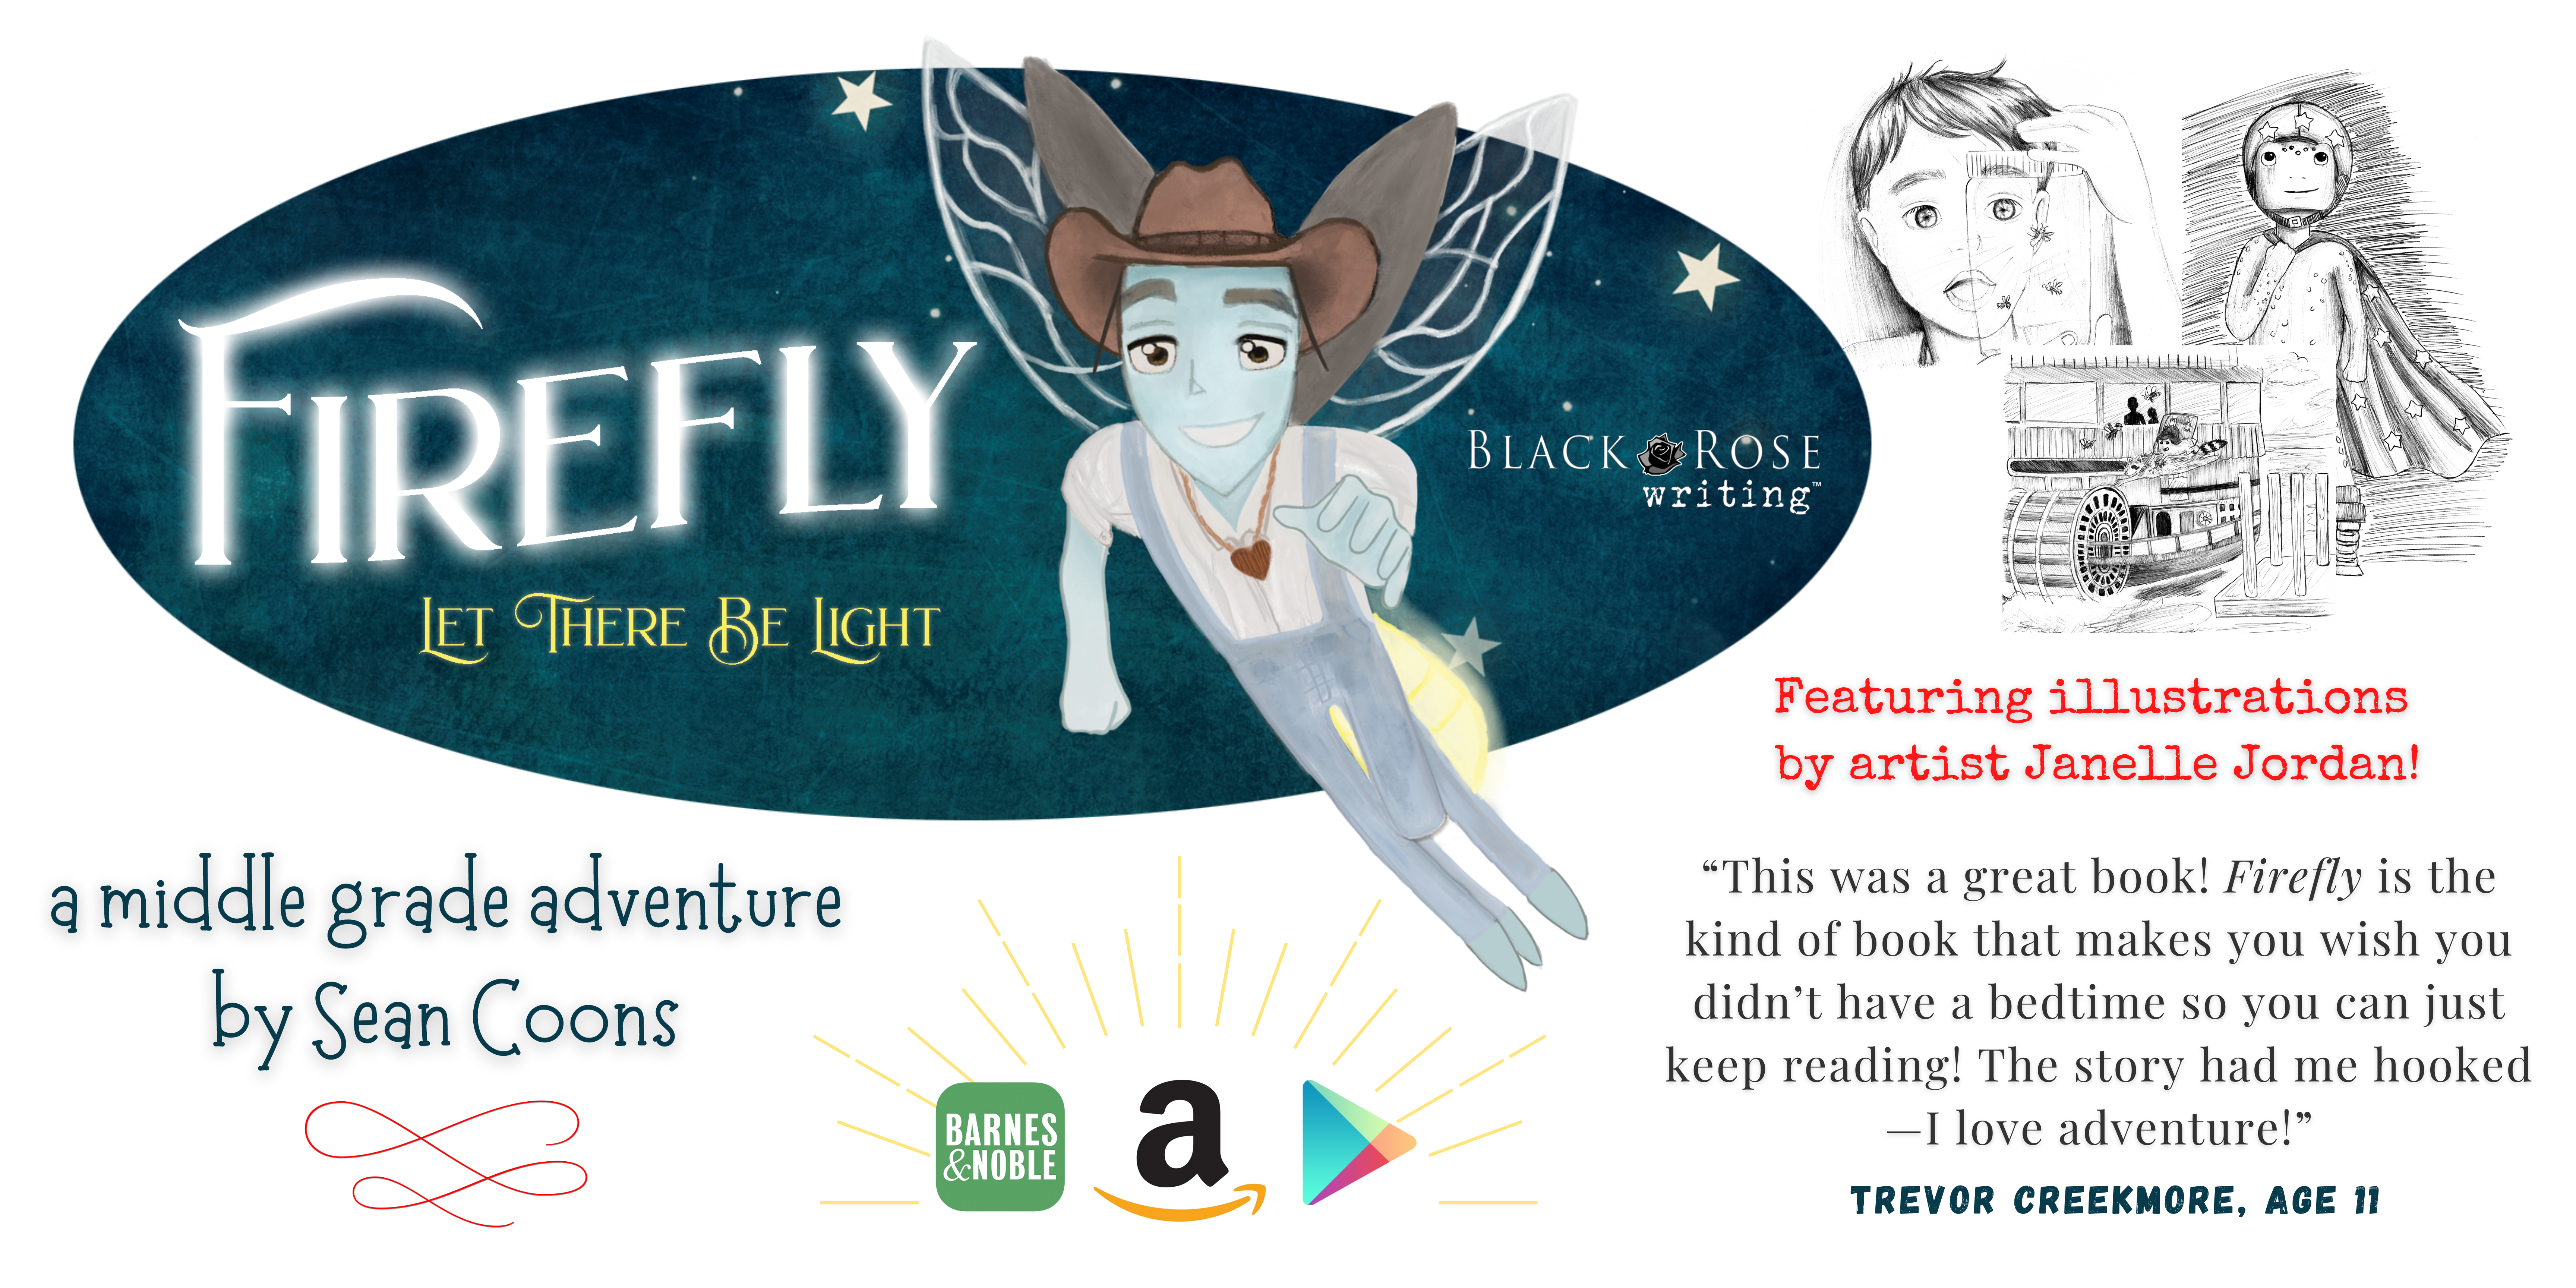 Firefly by Sean Coons - middle grade adventure novel - website banner - 001